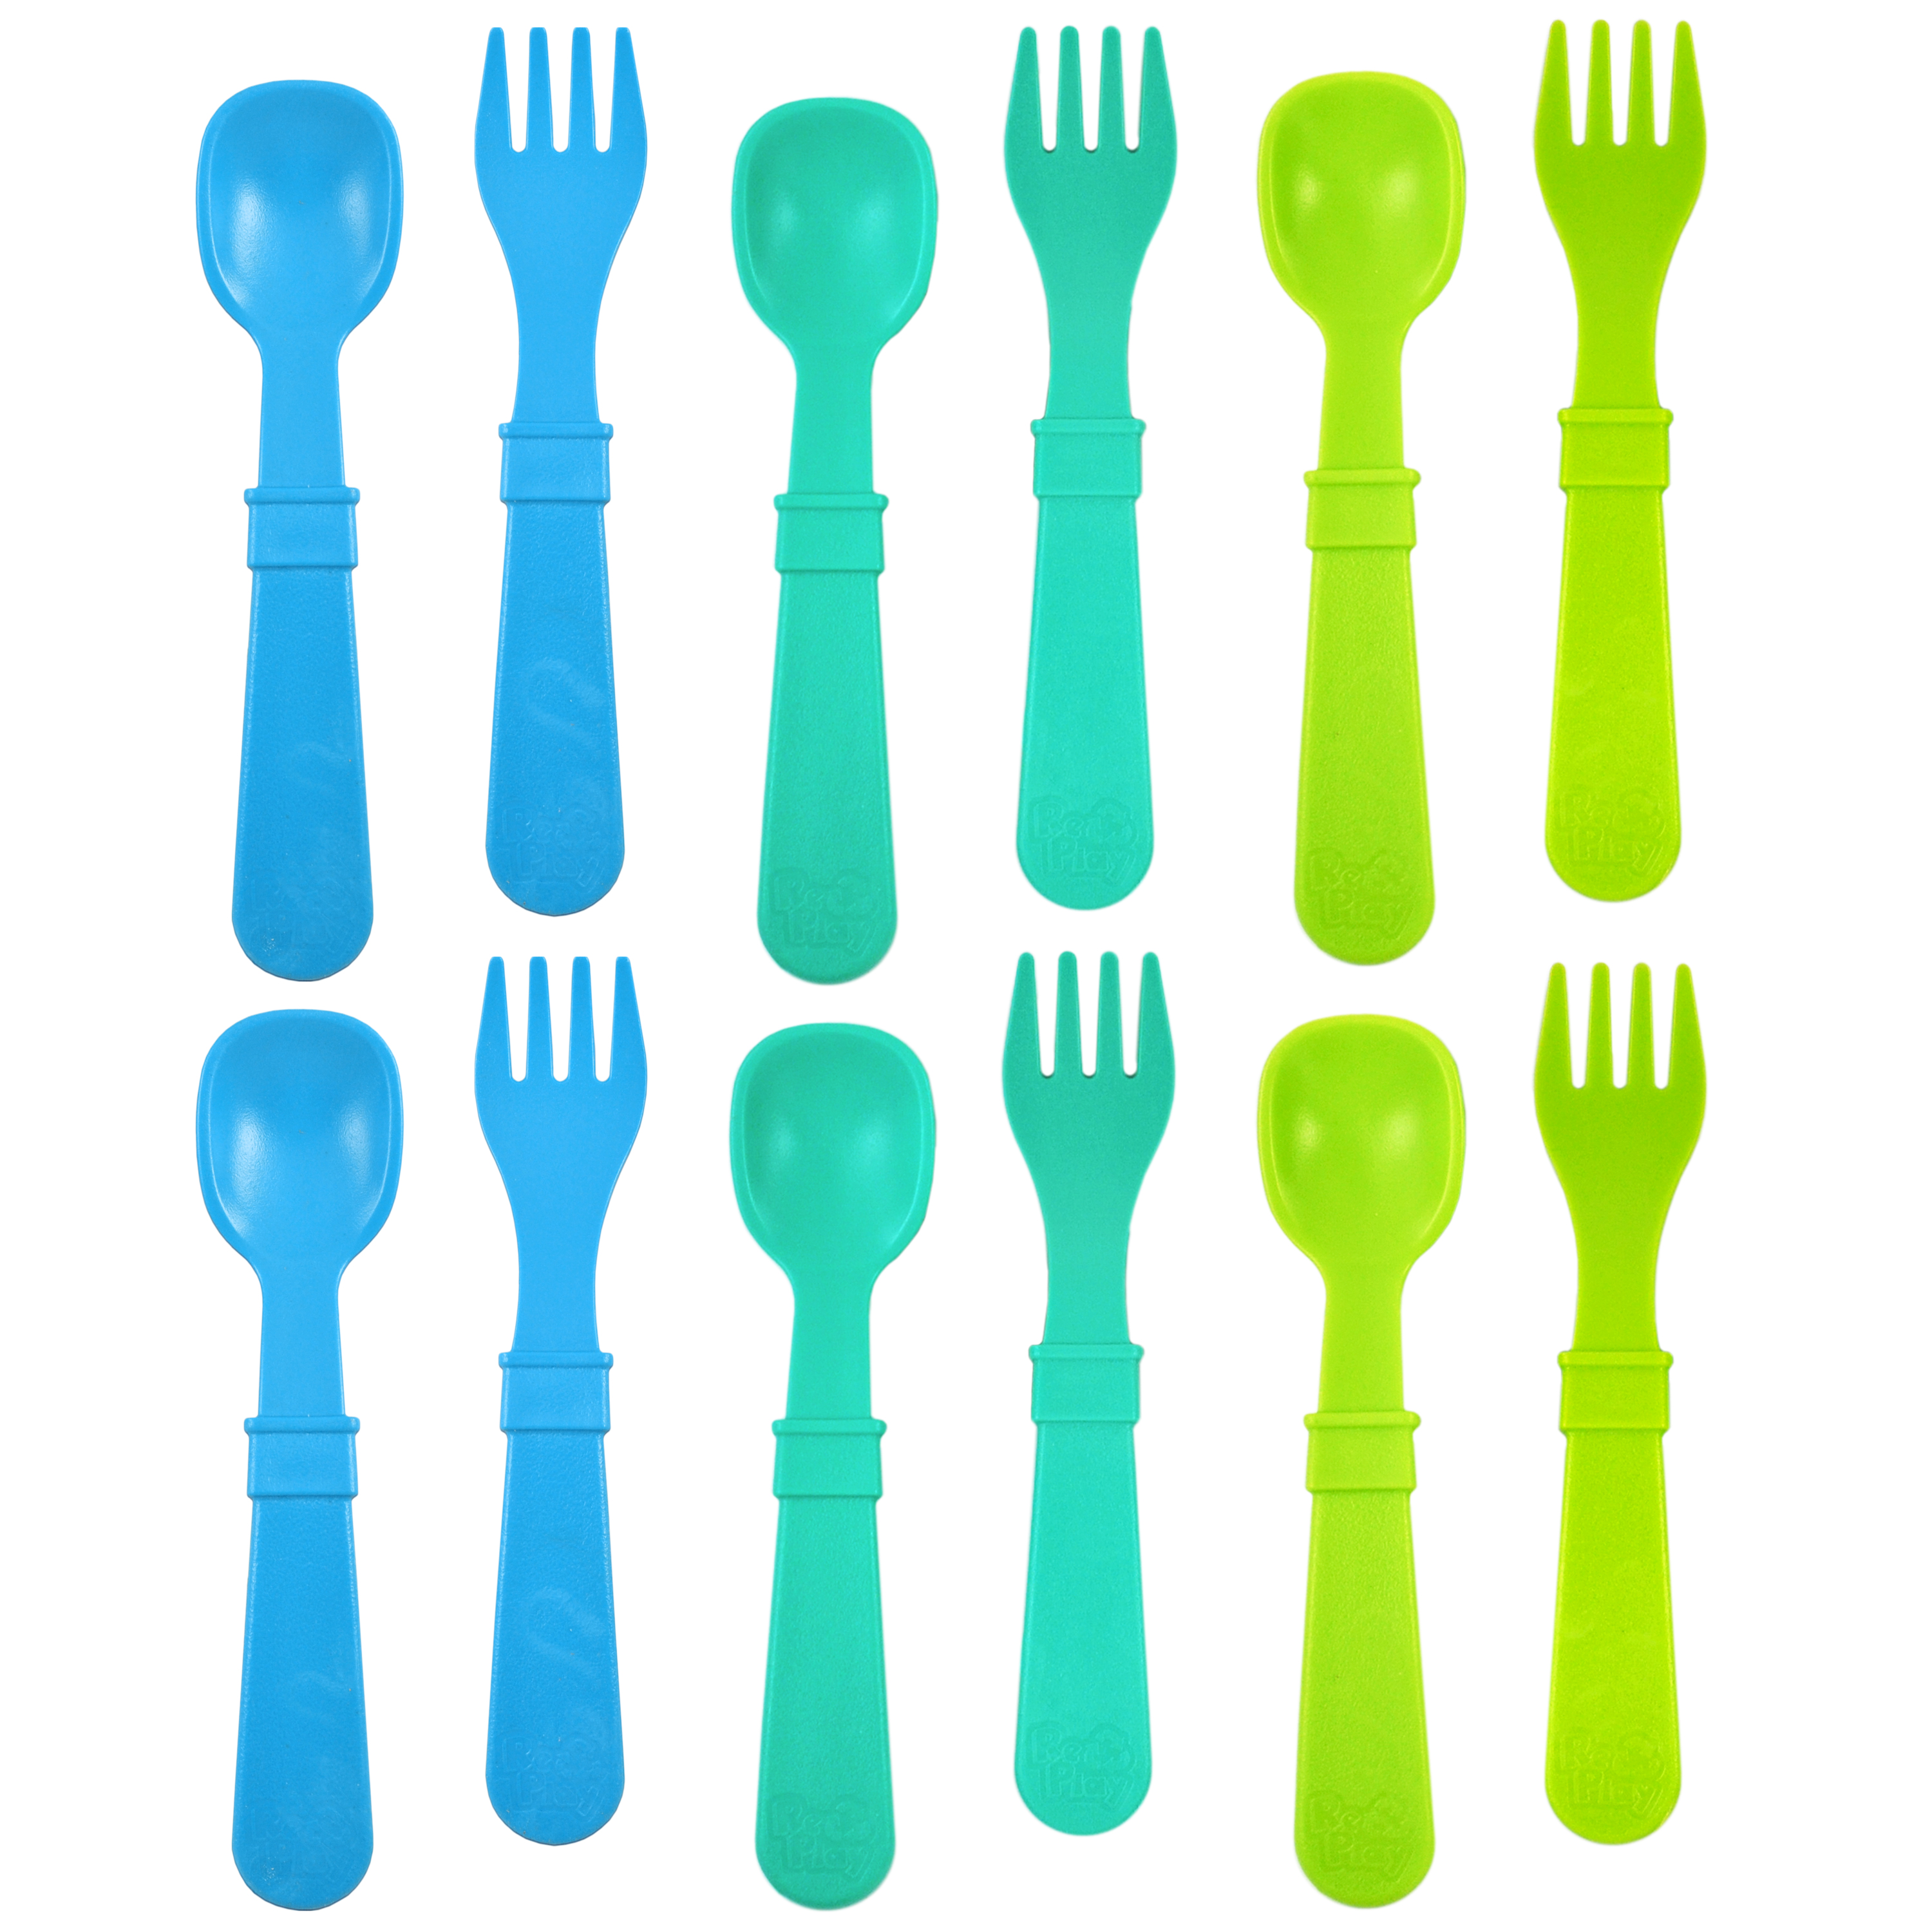 Re-Play Made in USA 12pk Toddler Feeding Utensils Spoon and Fork Set for Easy Baby, Toddler, Child Feeding - Sky Blue, Aqua, Green (Under the Sea) 6 Spoons/6 Forks